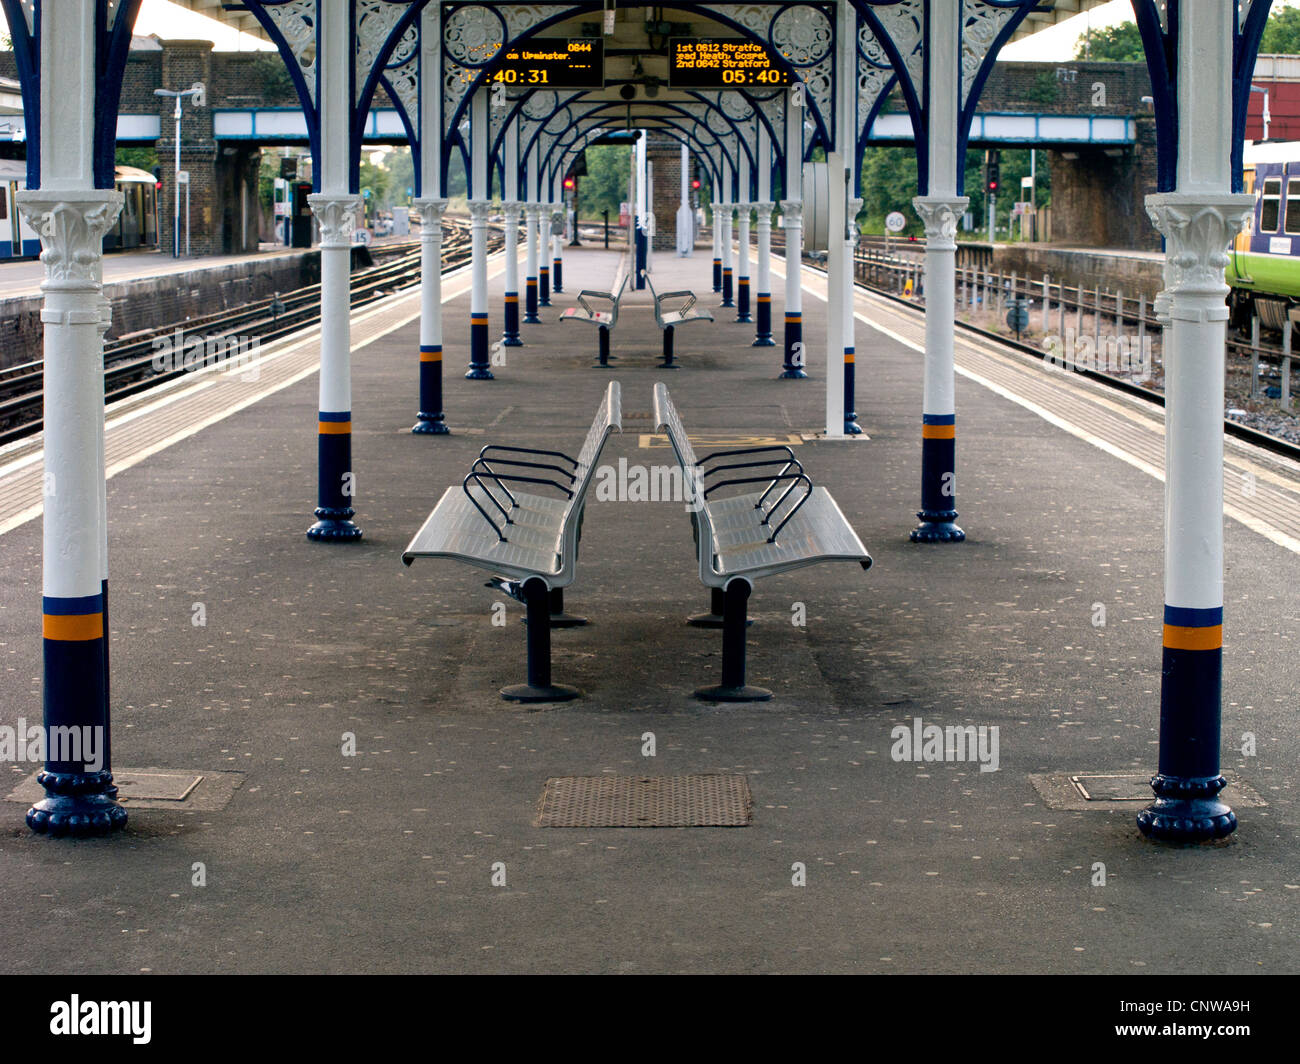 UK, London, Richmond Upon Thames Rail Station - Empty platform a quiet moment before the morning rush - Stock Image